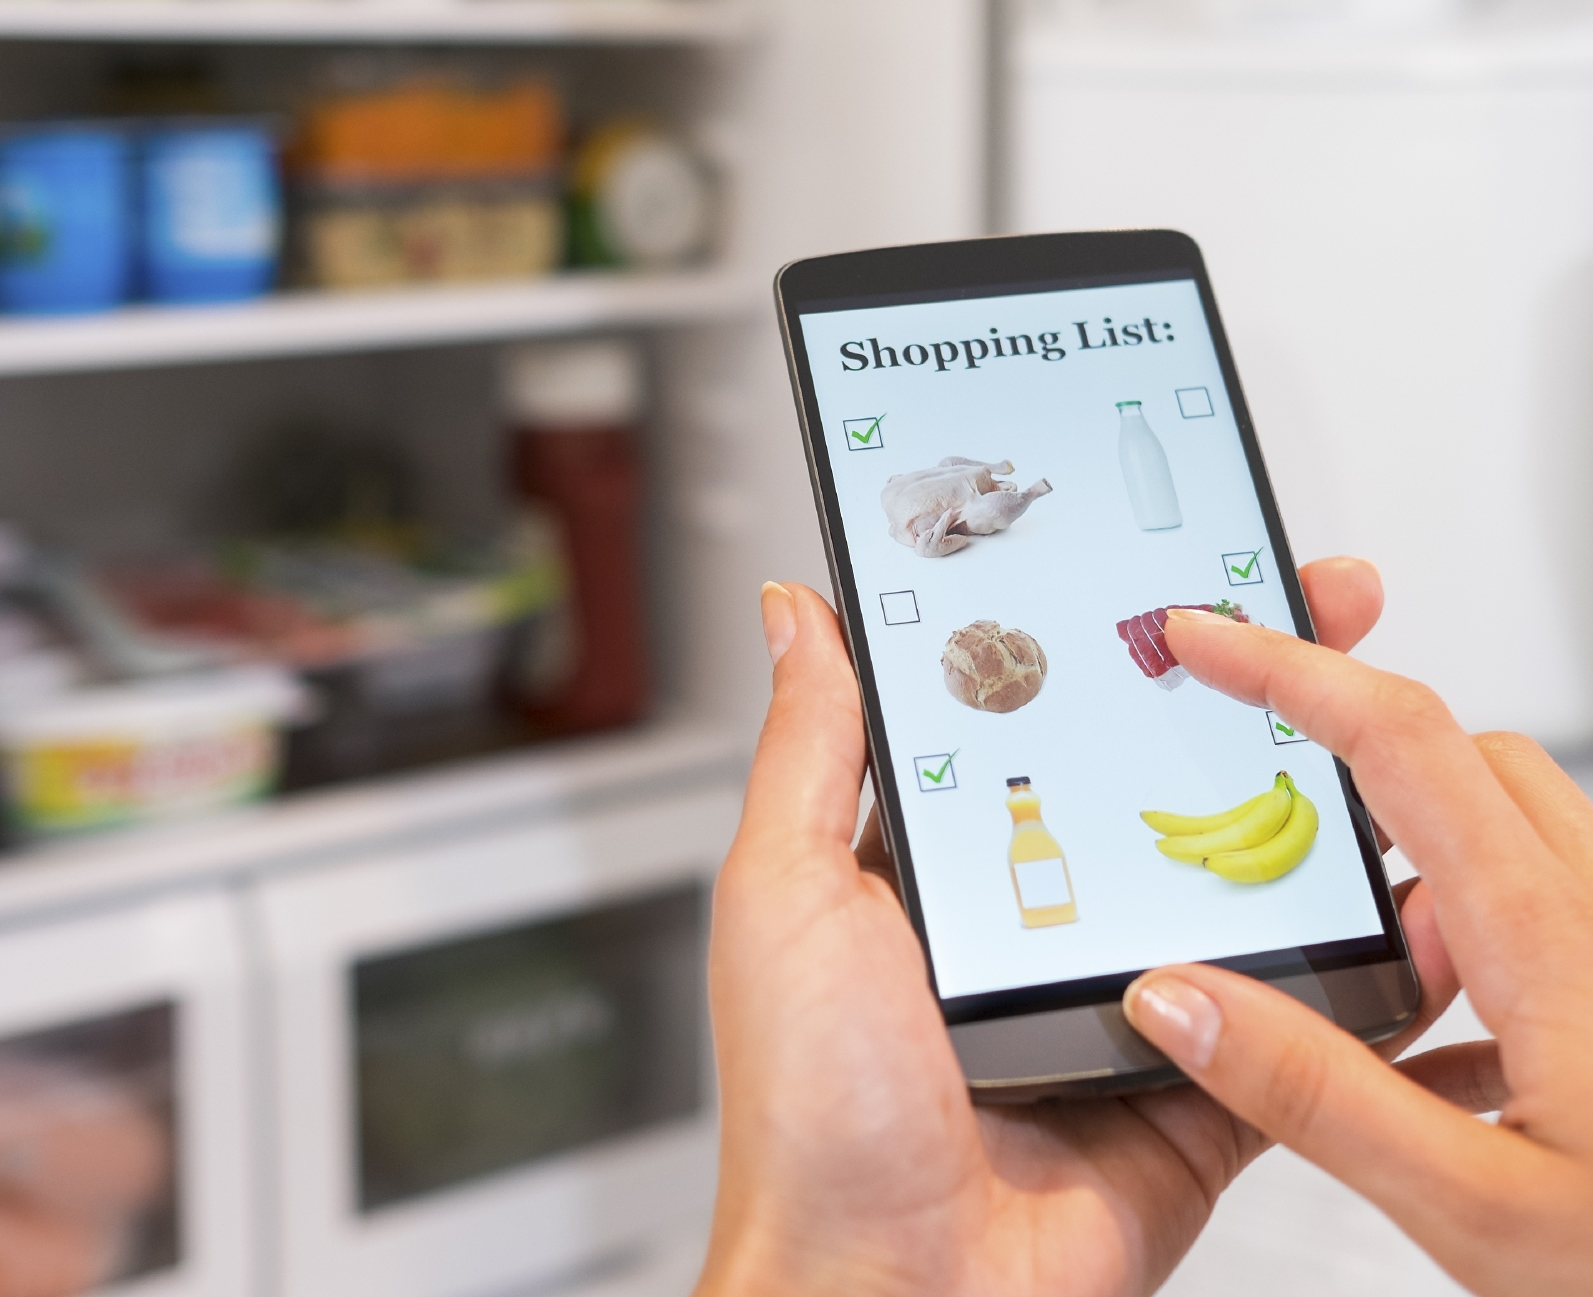 Buying Fruits And Vegetables Online: Benefits And Things To Consider